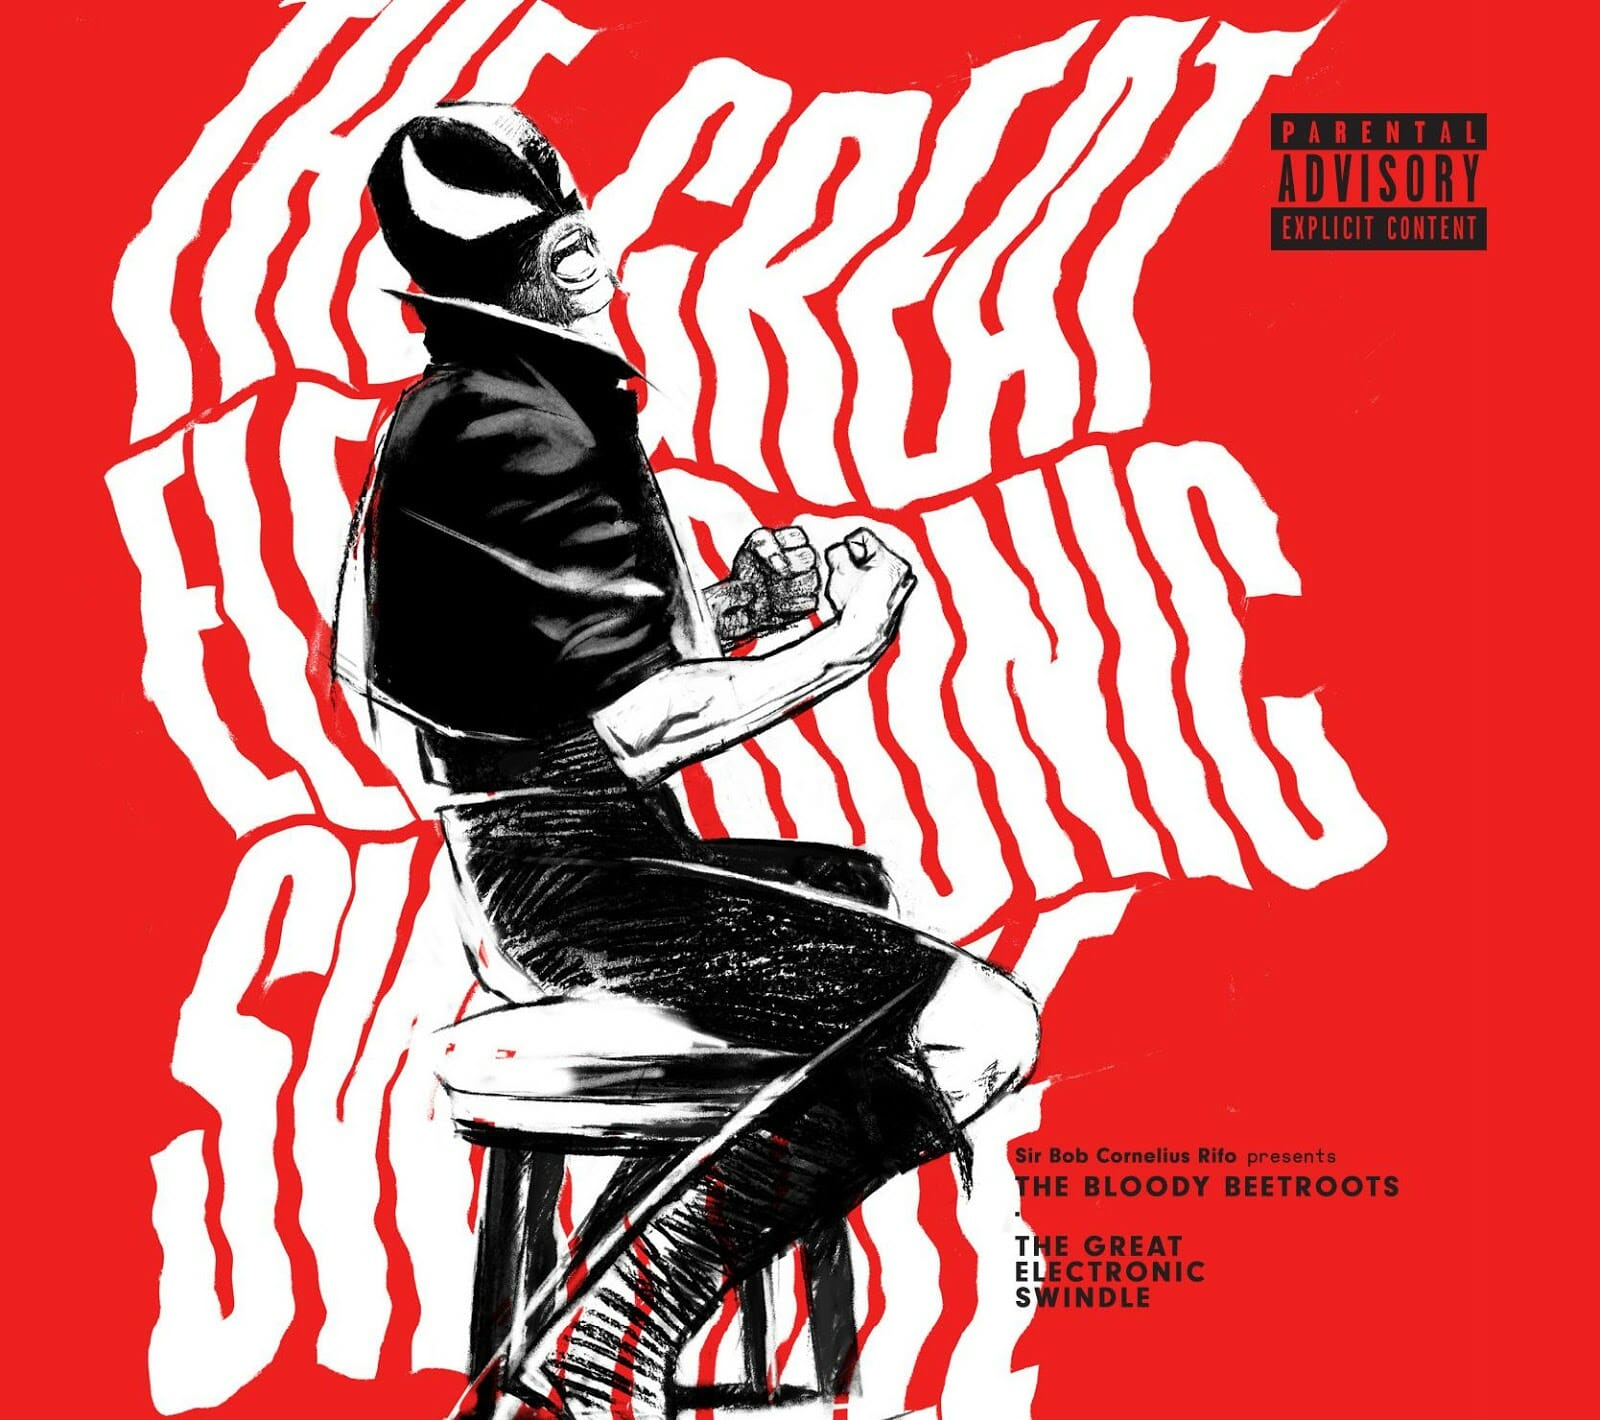 The Bloody Beetroots announce long-awaited new LP 'The Great Electronic Swindle'The Bloody Beetroots Swindle Album Cover